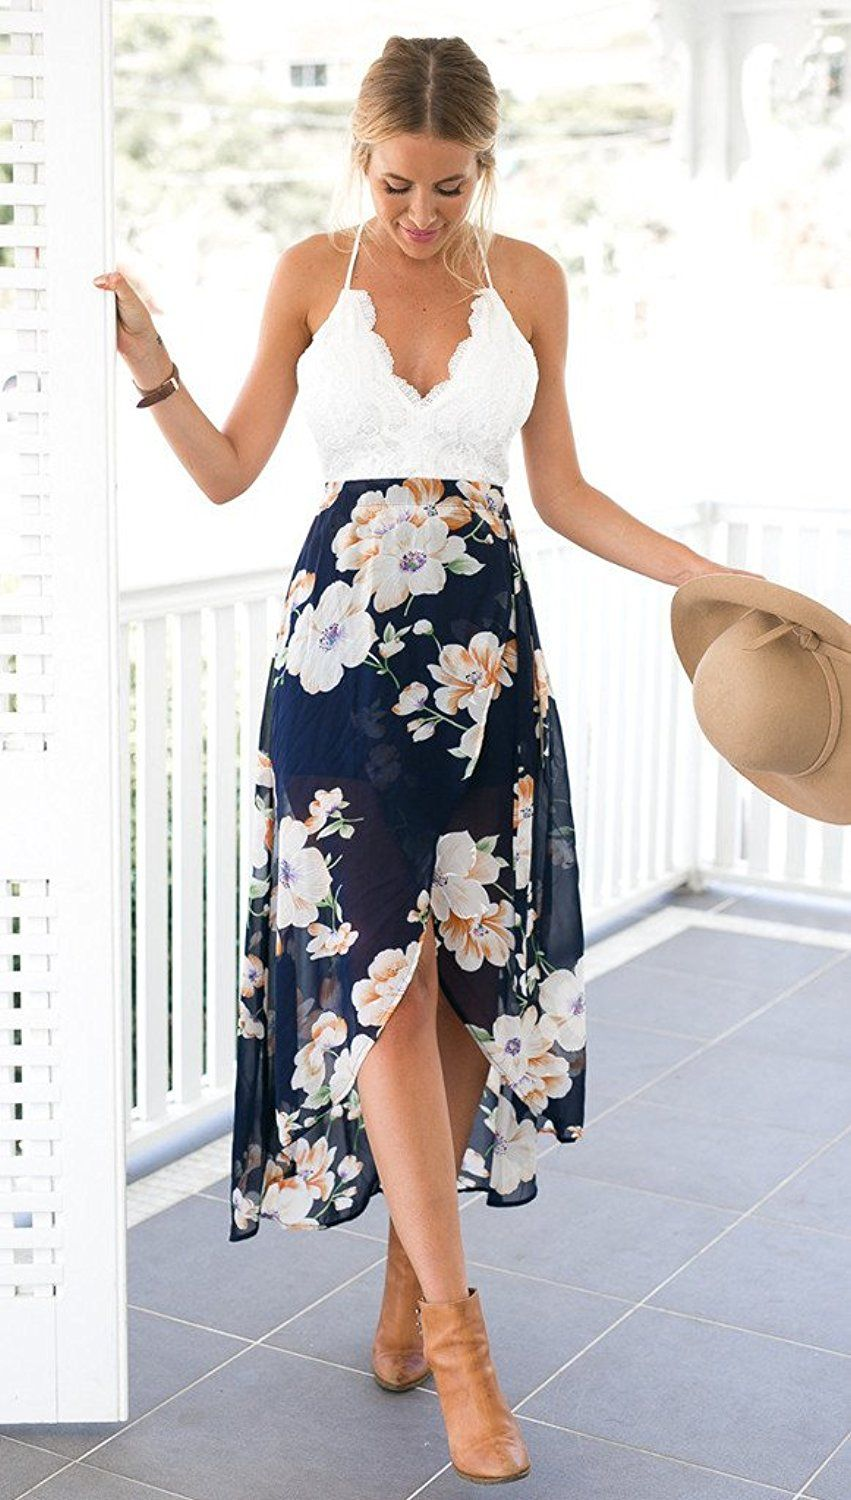 e8c86b5940 Blooming Jelly Women s Deep V Neck Sleeveless Summer Floral Long Halter  Dress at Amazon Women s Clothing store